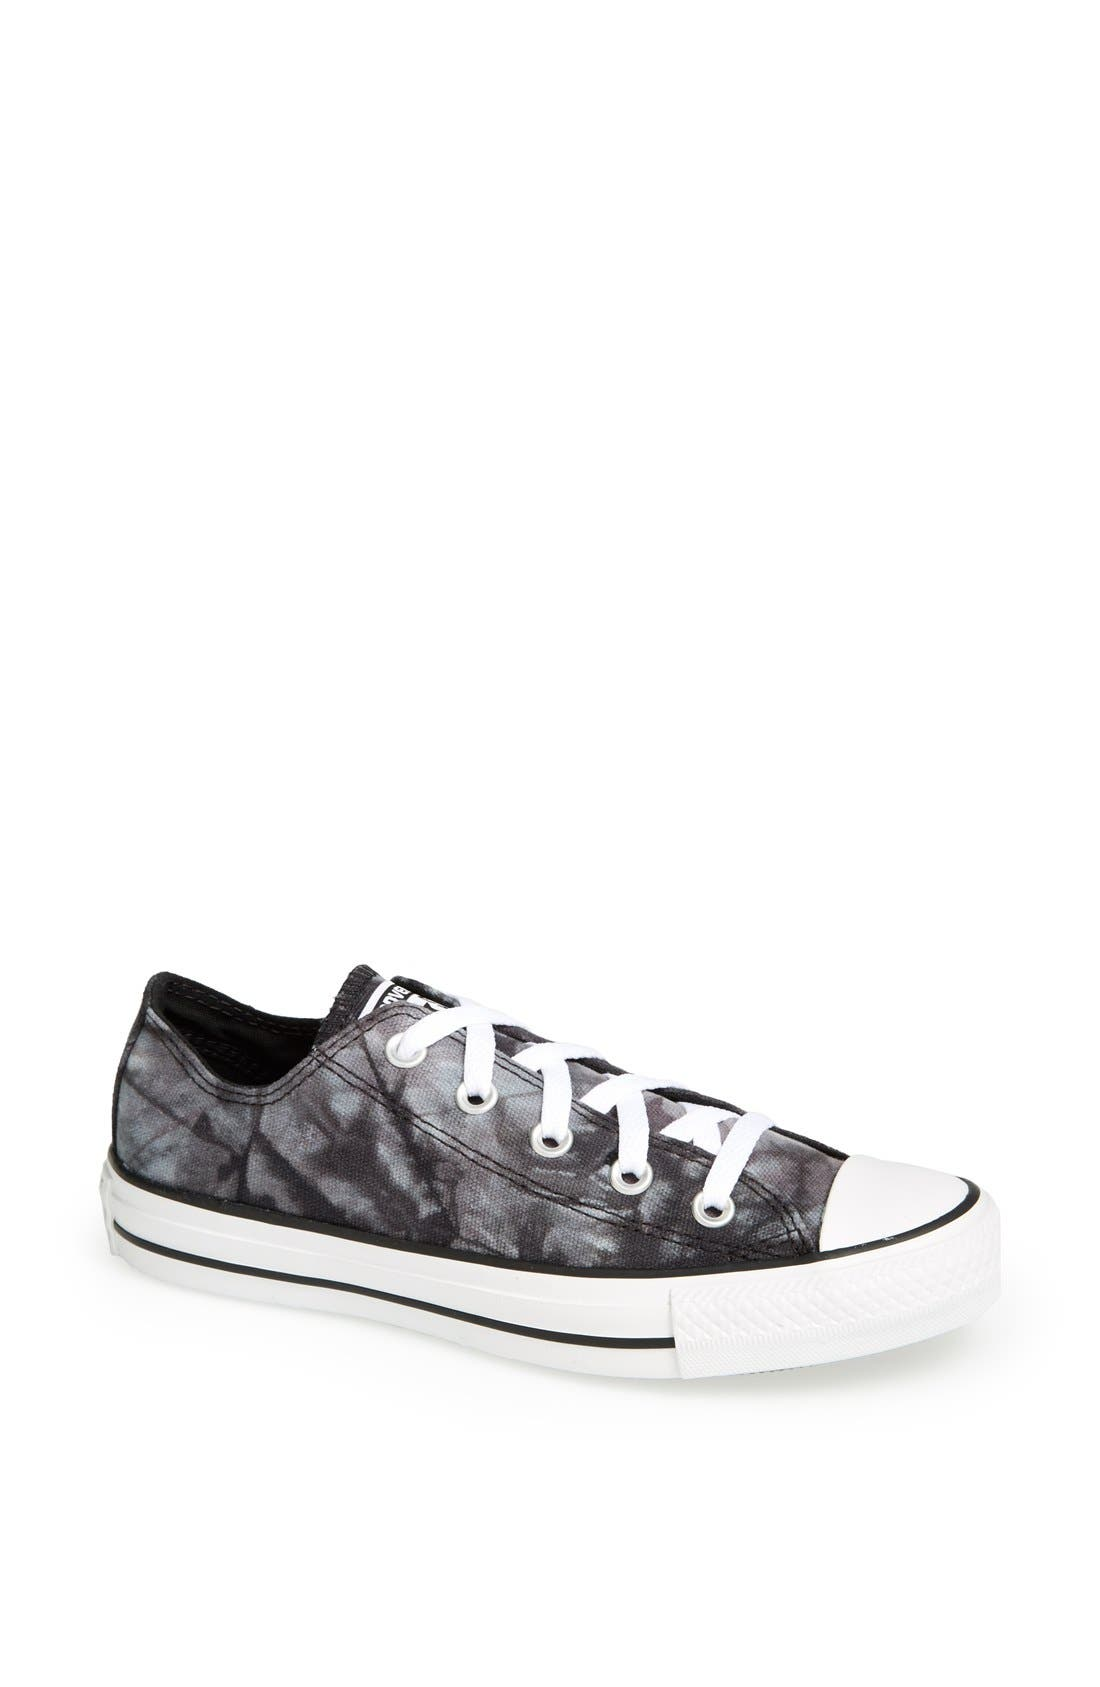 Main Image - Converse Chuck Taylor® All Star® 'Ox' Tie Dye Low Top Sneaker (Women)